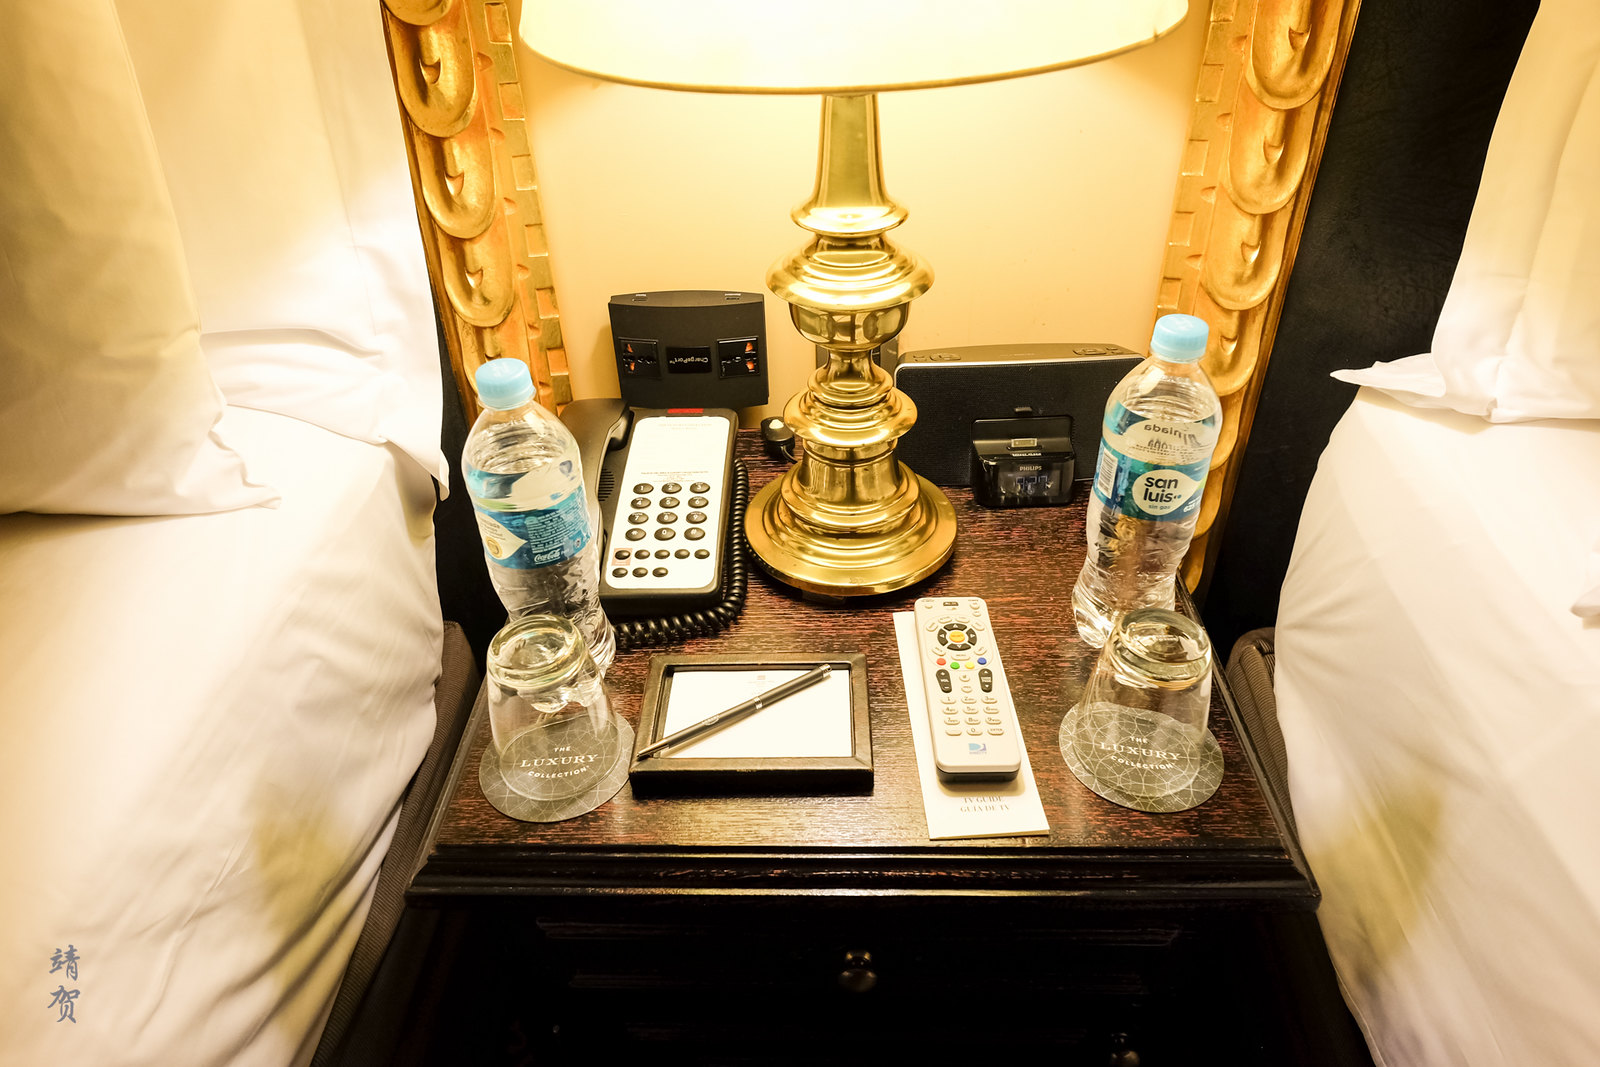 Bottled water in the bedside table